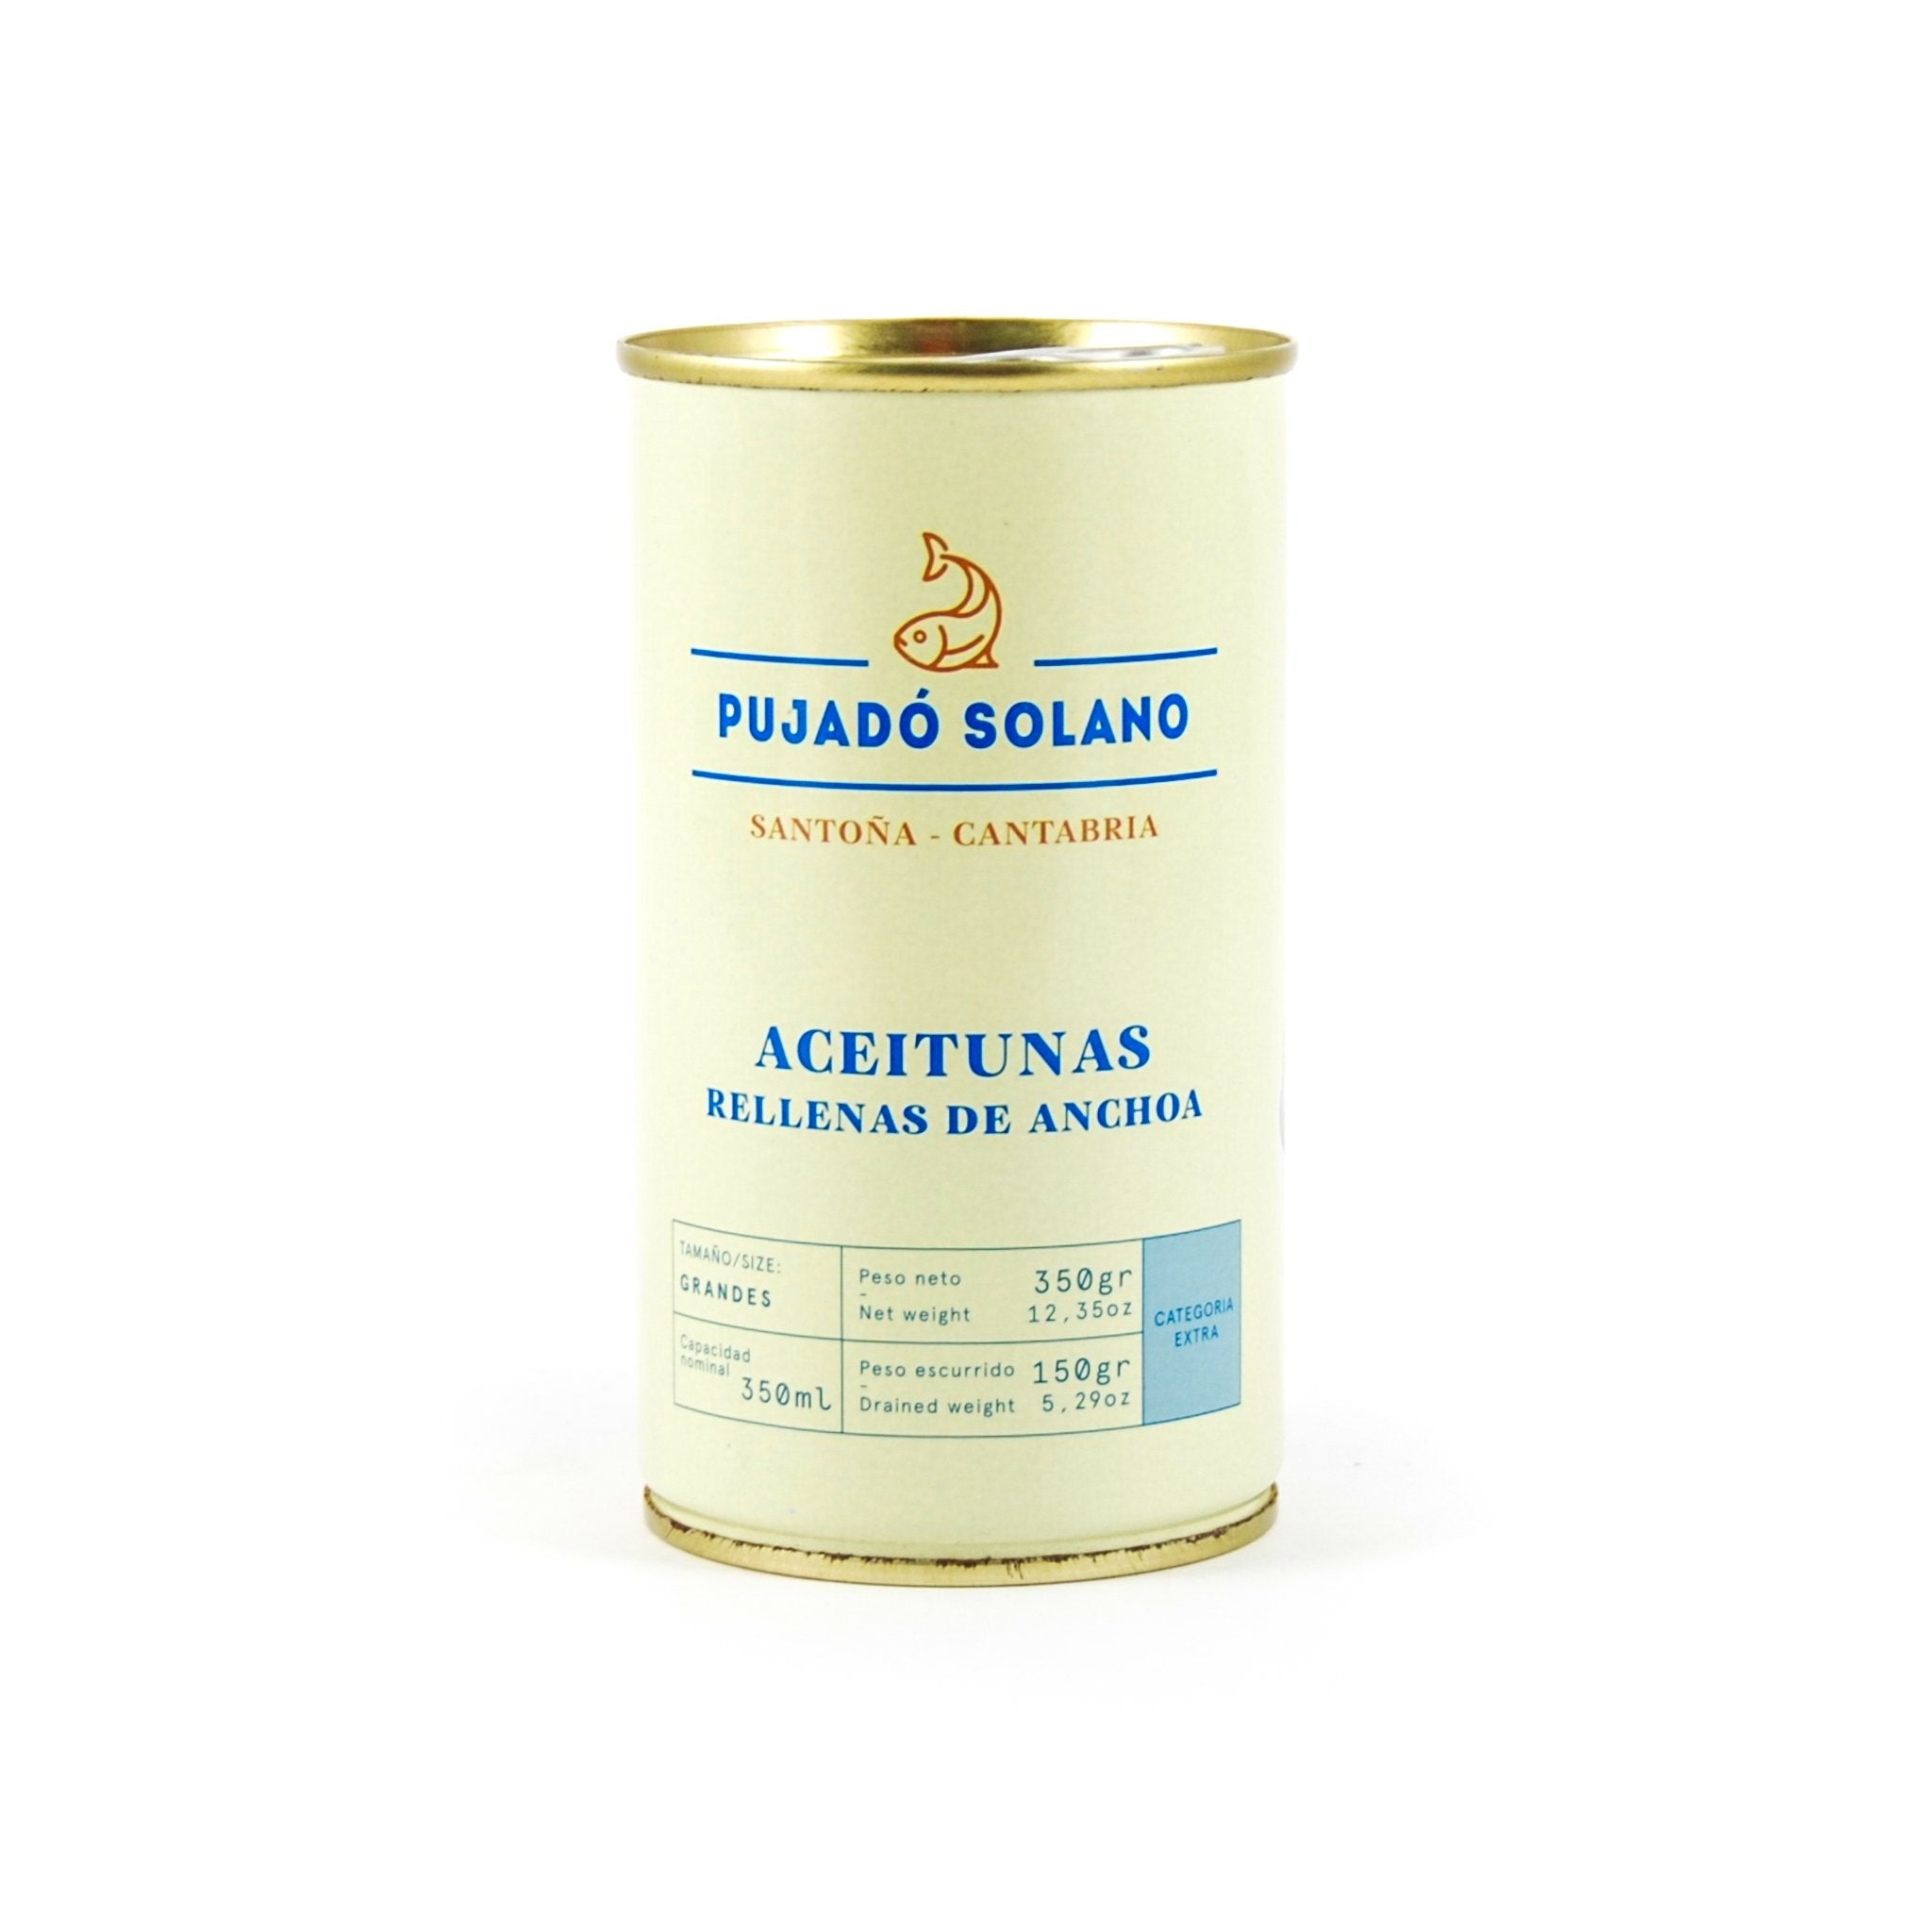 Pujado Solano Manzanilla Olives With Anchovy 350g Ingredients Savoury Snacks & Crackers Spanish Food